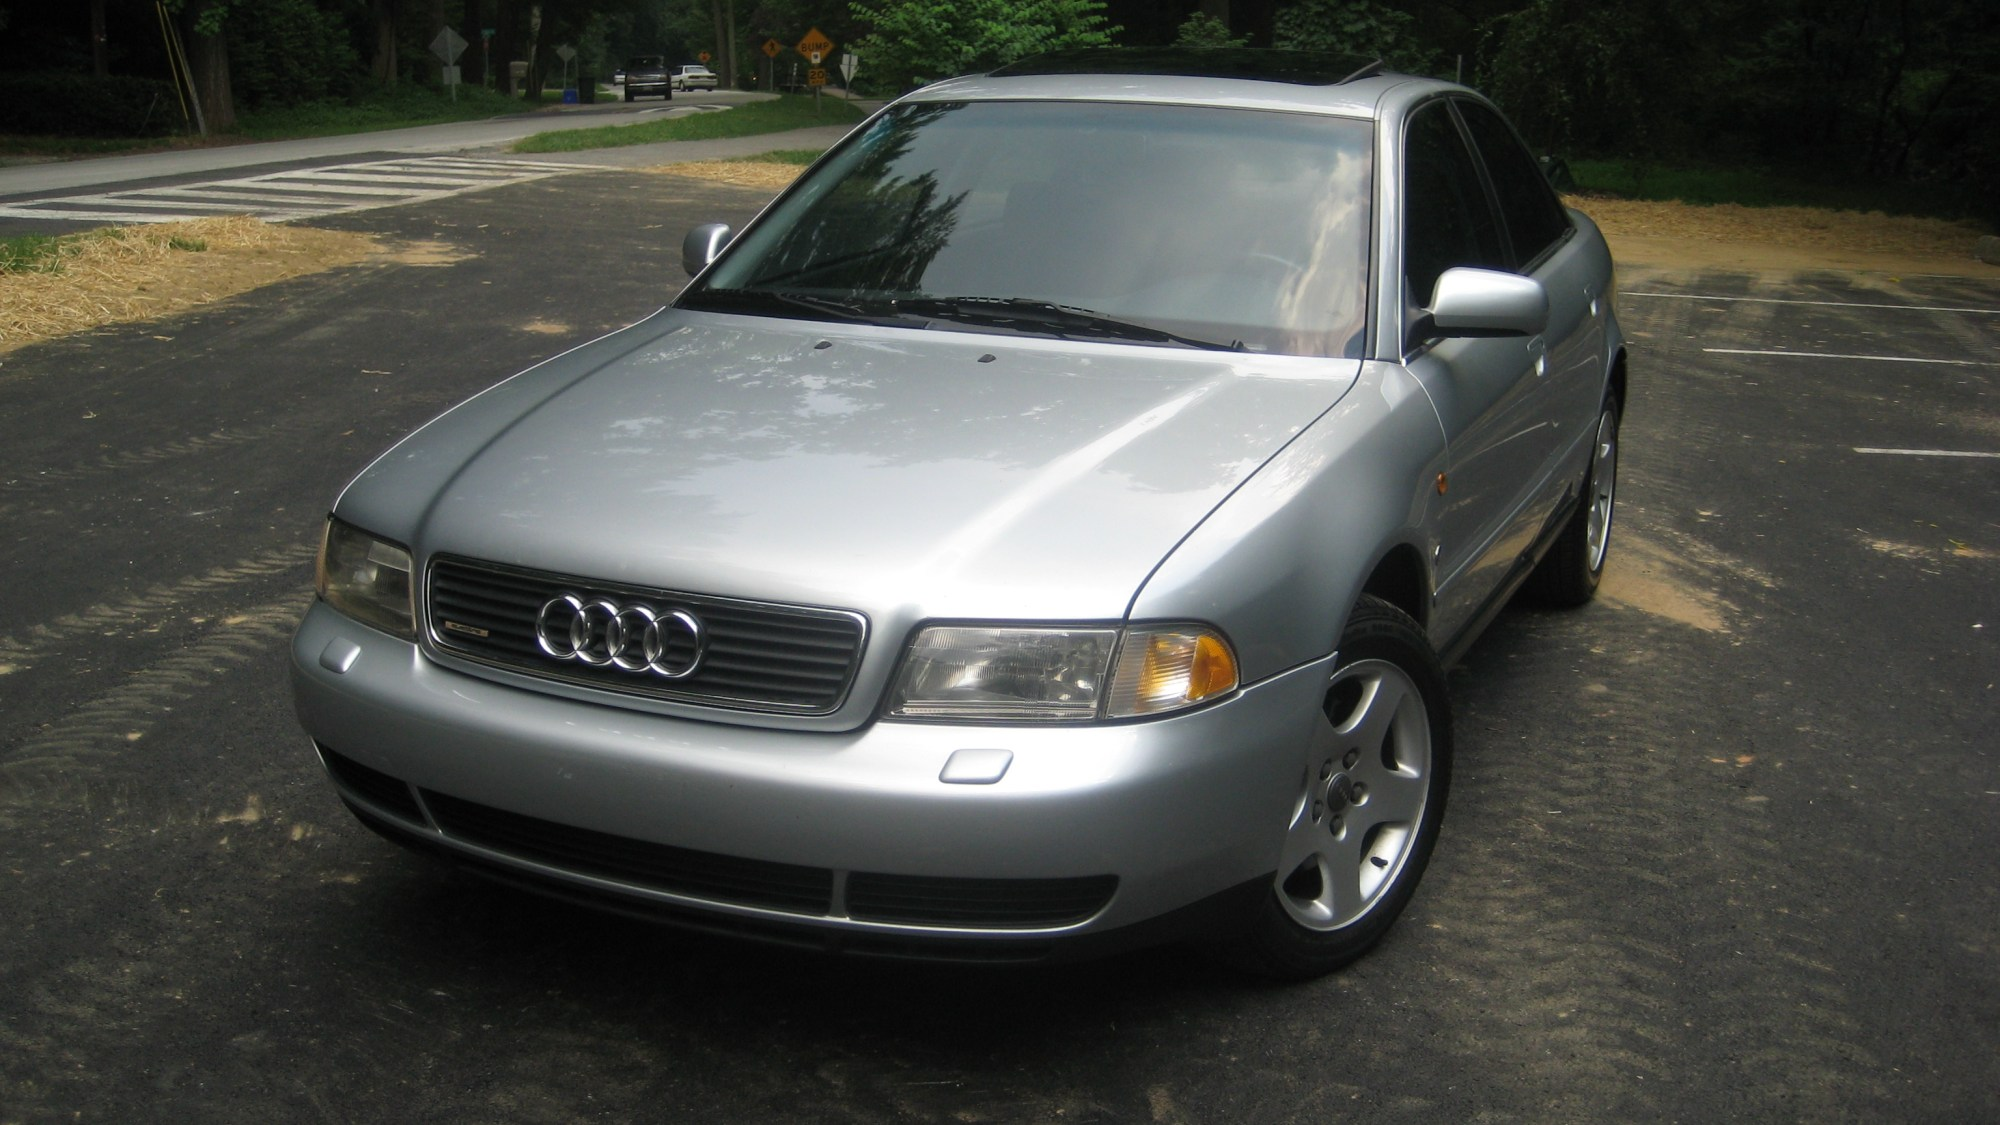 hight resolution of audi a4 28 quattro for sale audi a4 1997 for audi a4 2 8